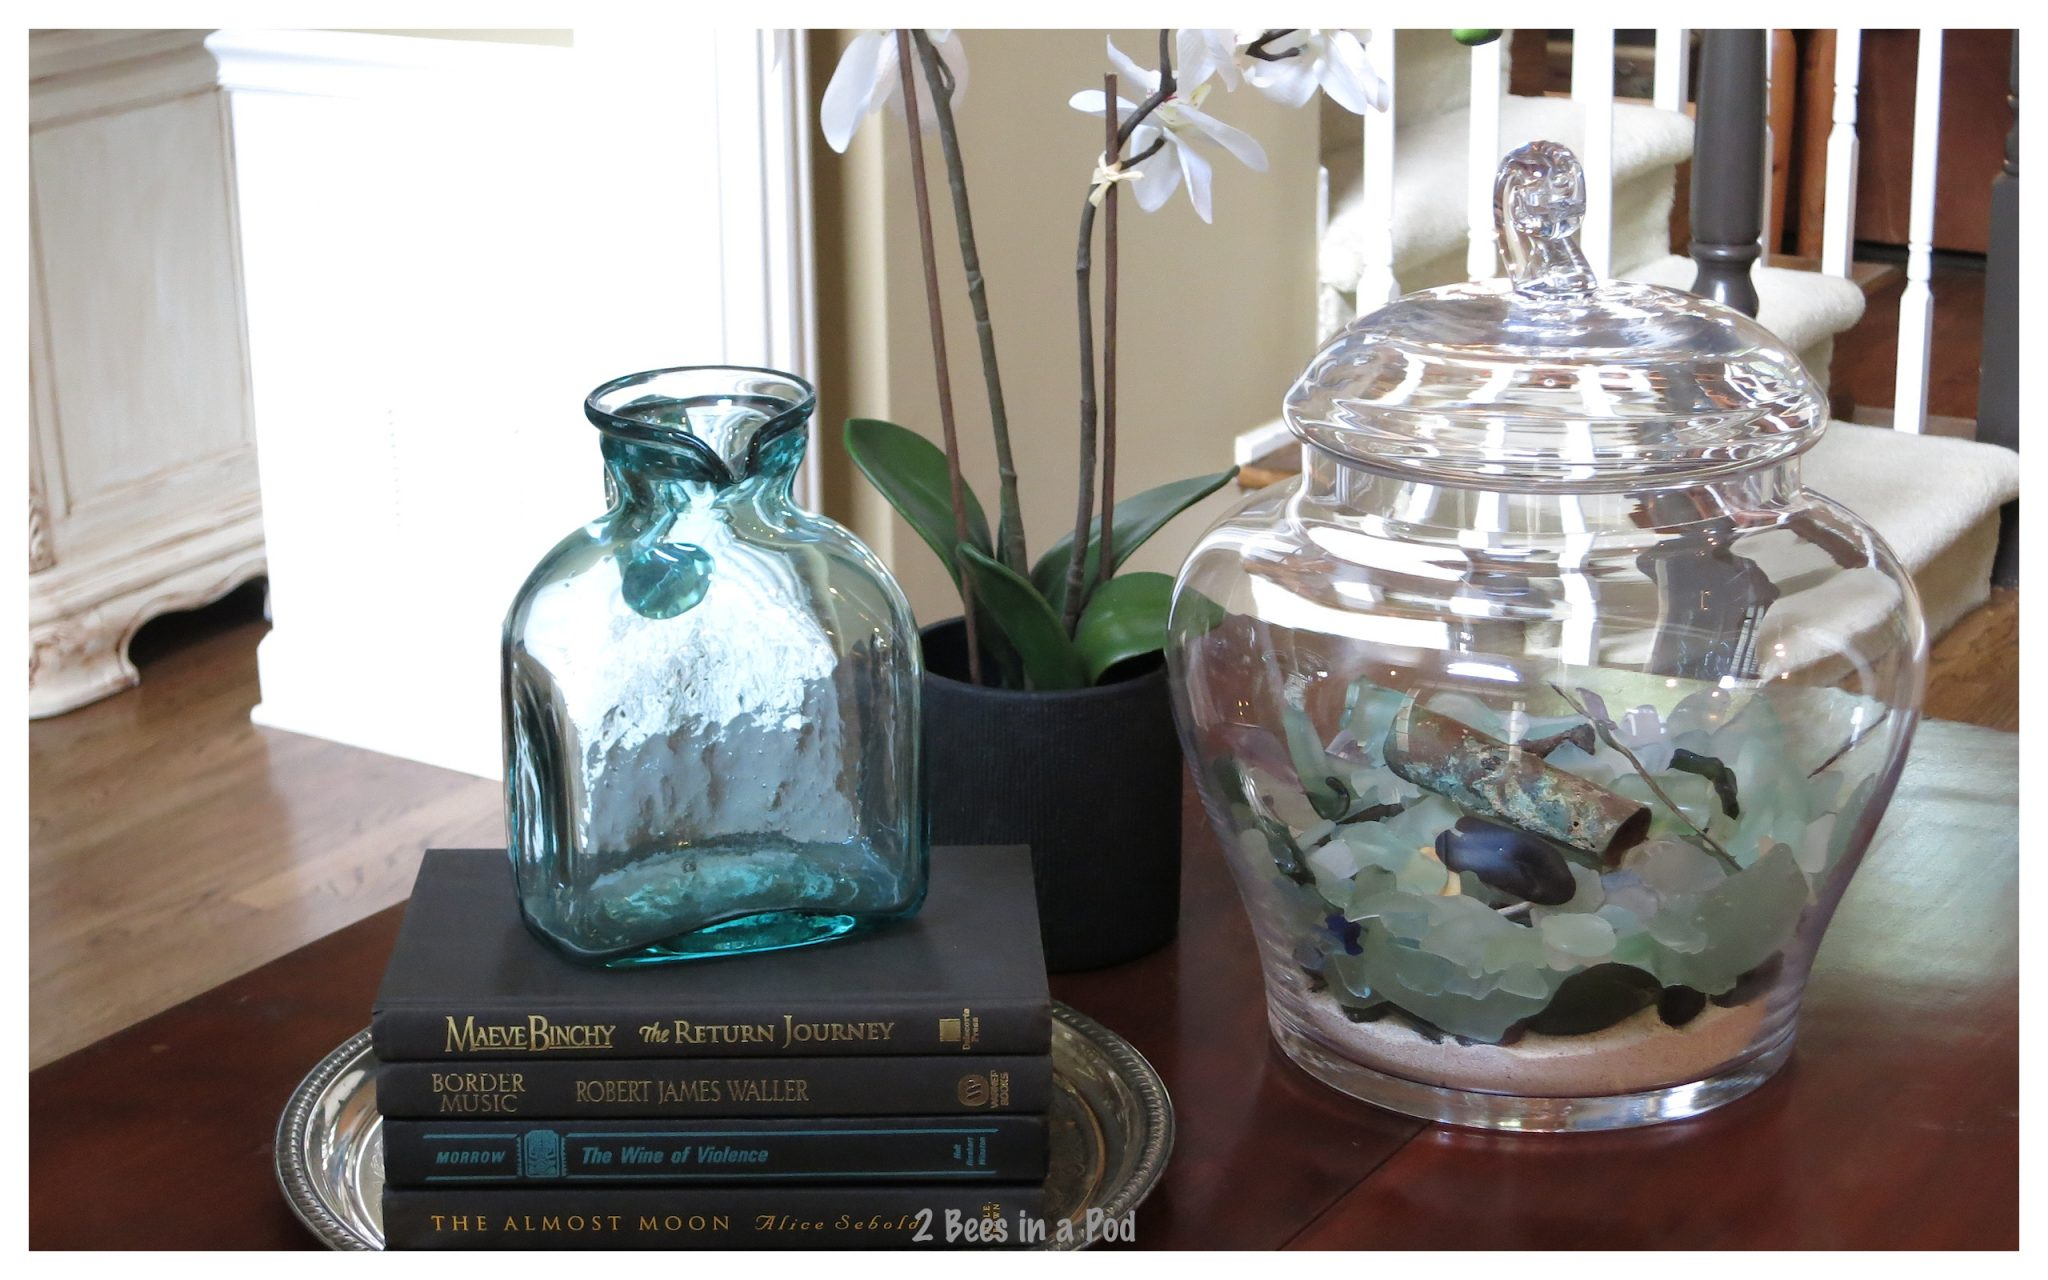 Black books paired with turquoise